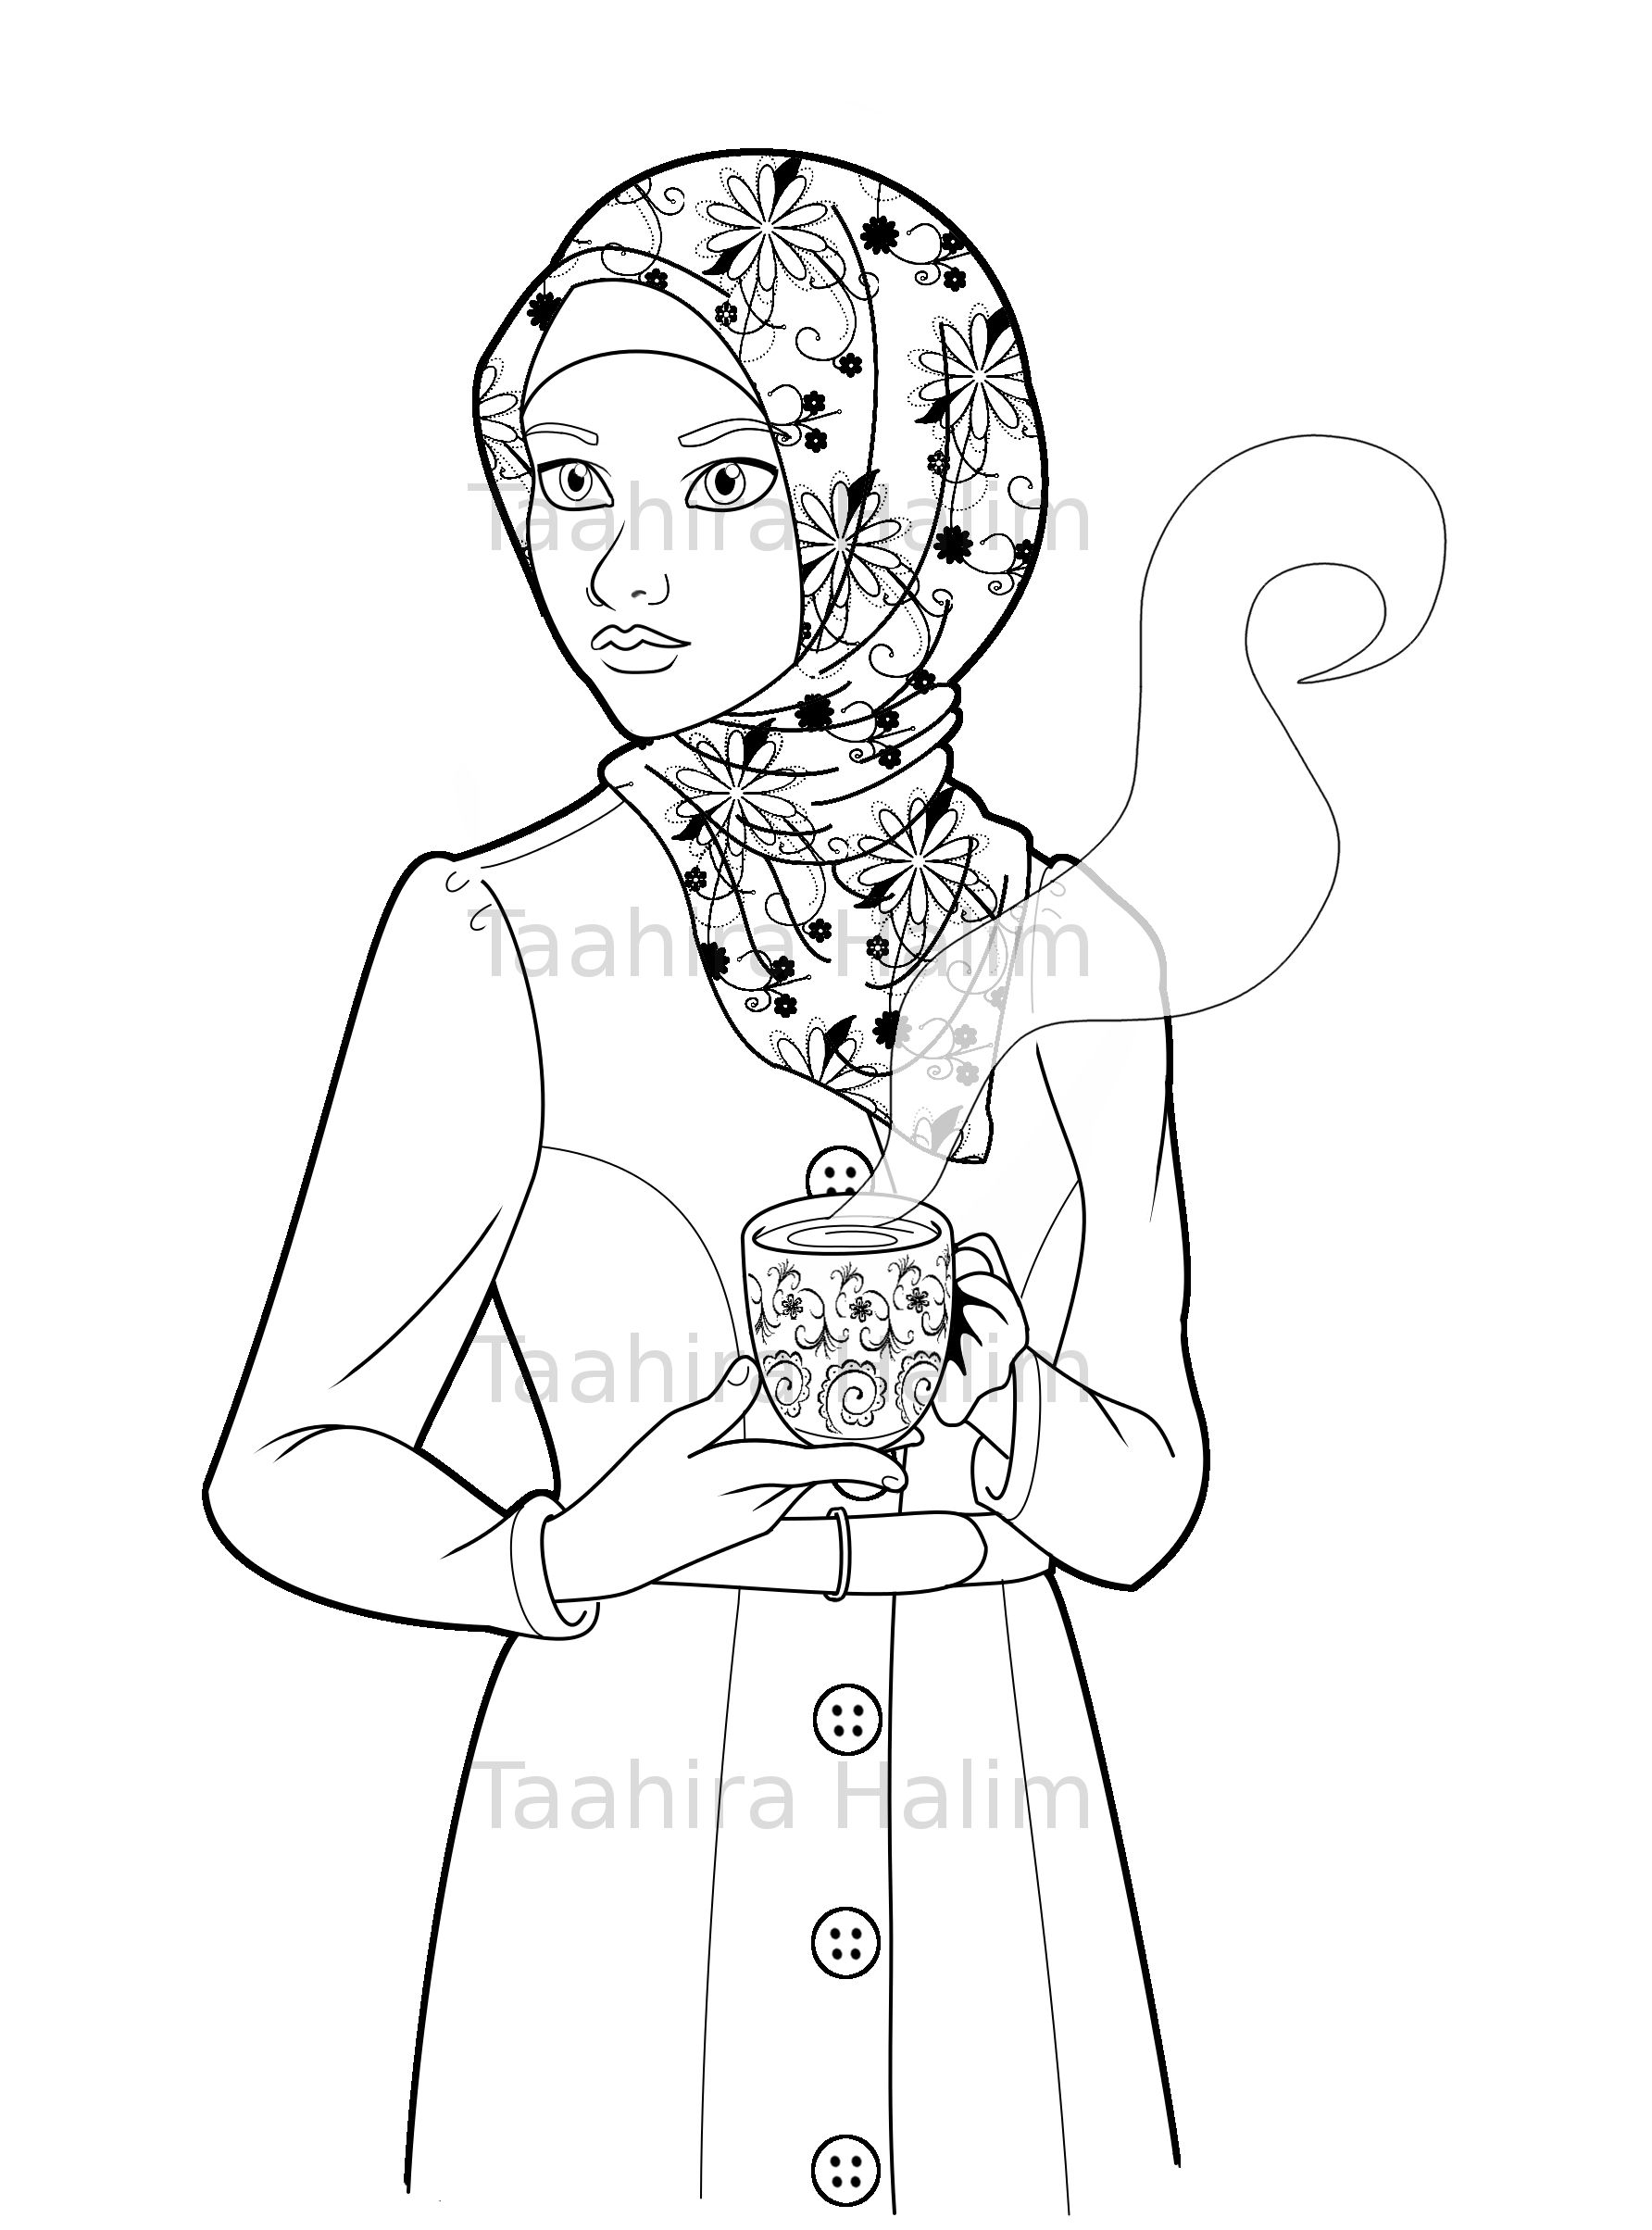 Islamic coloring page featuring